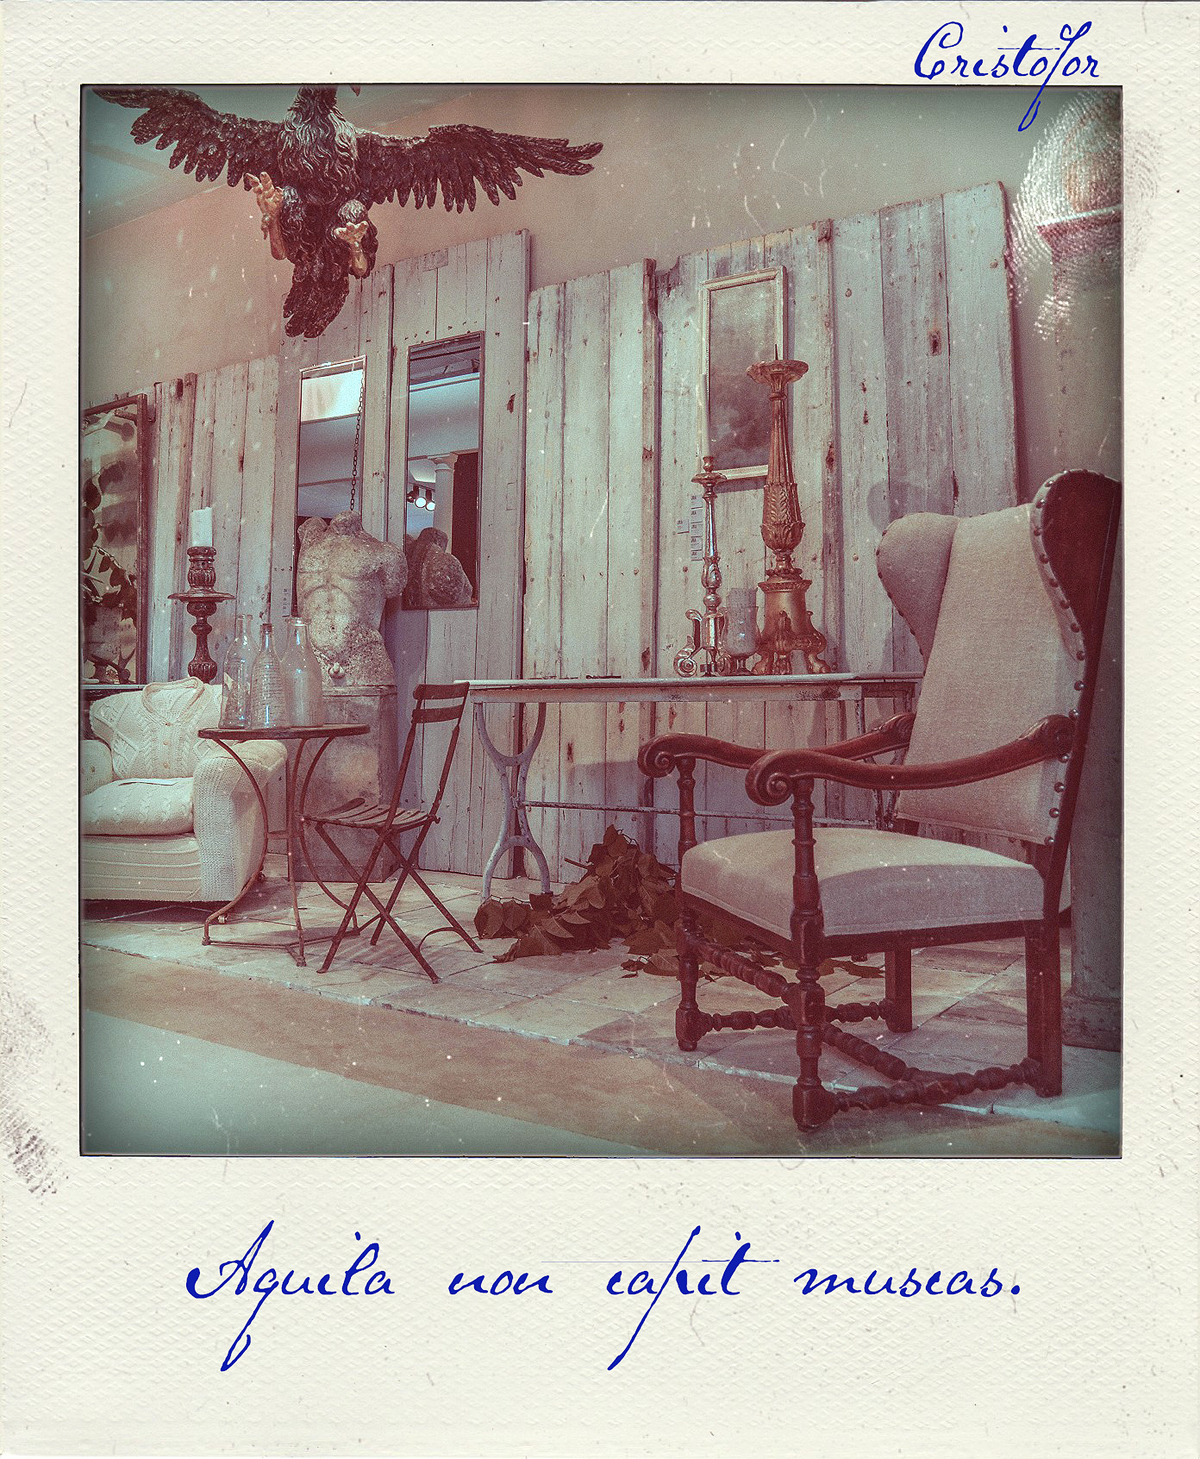 Aquila Non Capit Muscas, Polaroid Stories by Cristina Schek